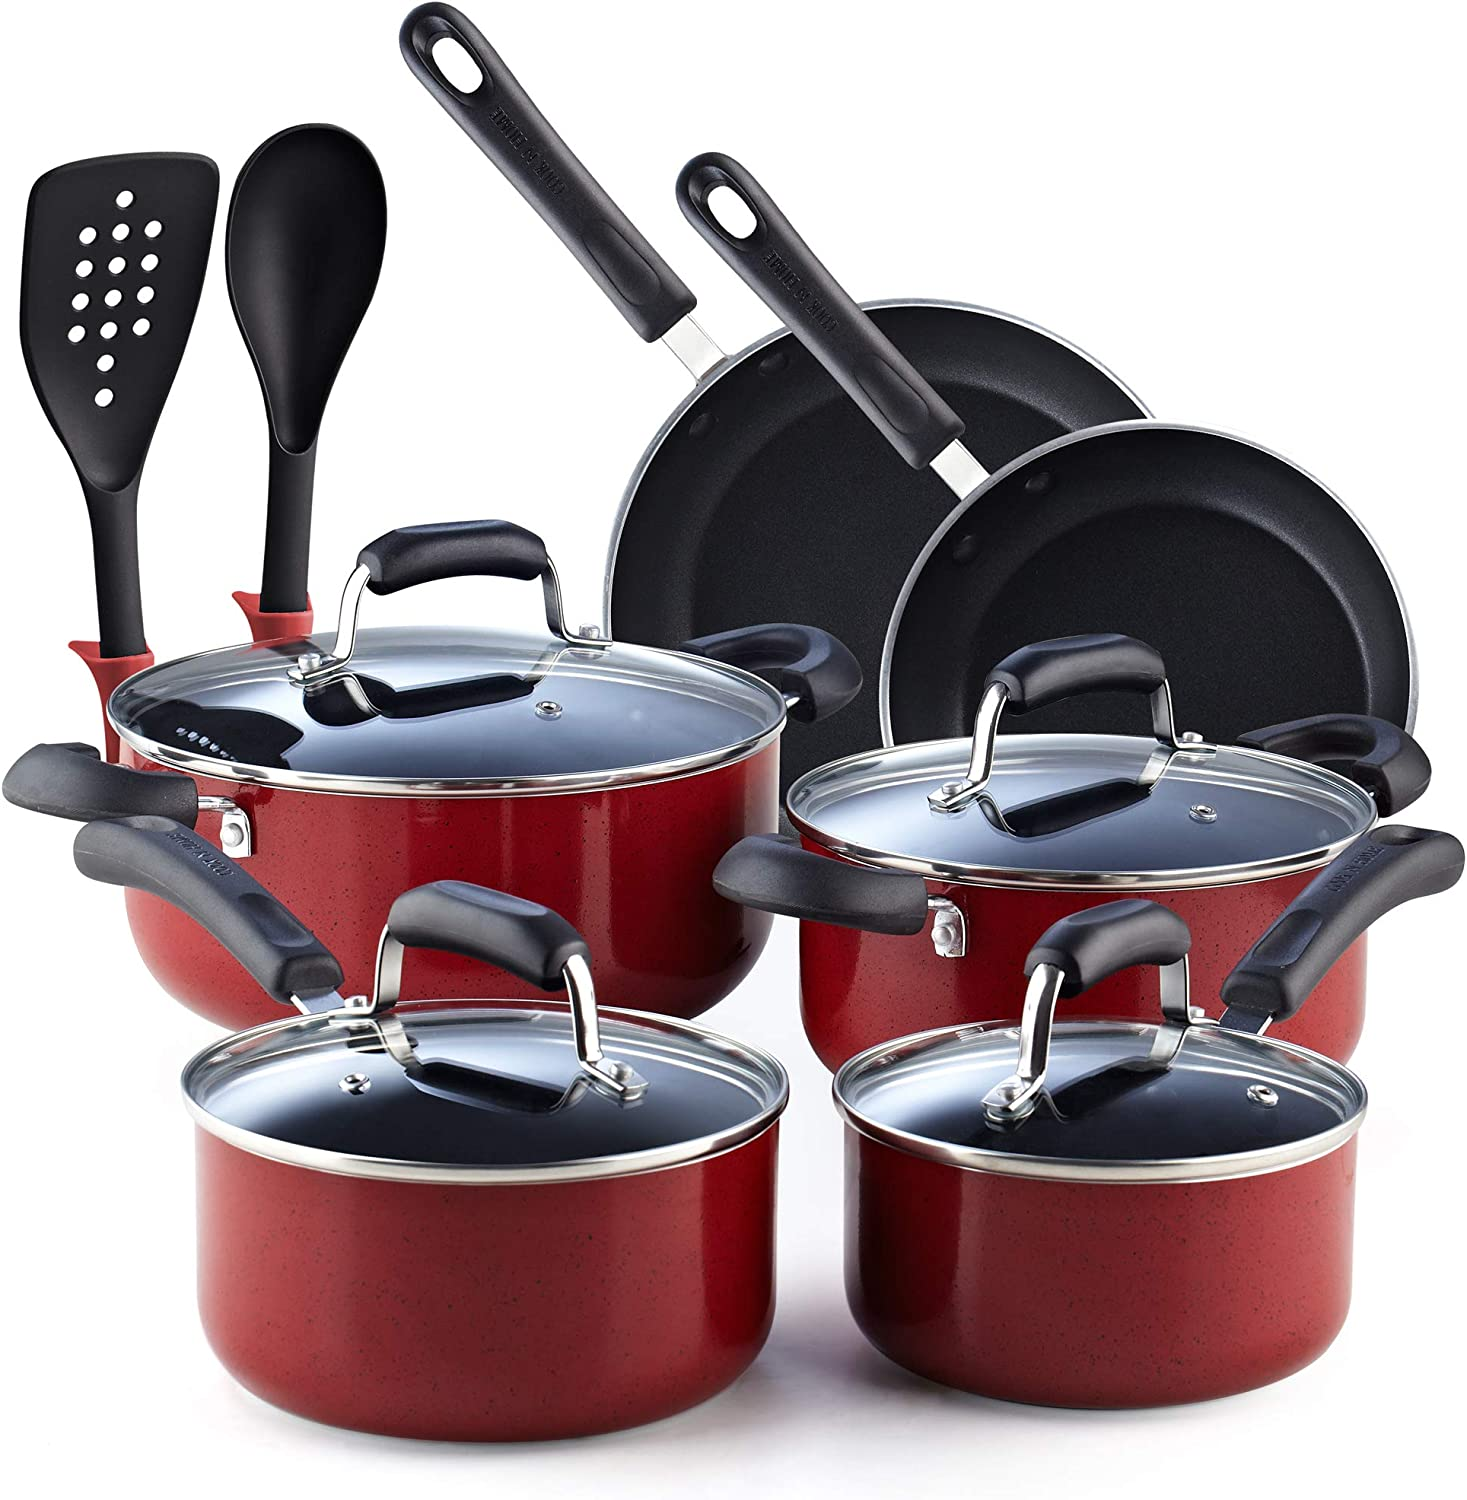 Cook N Home 02601 Stay Cool Handle, Red Marble Pattern 12-Piece Nonstick Cookware Set,